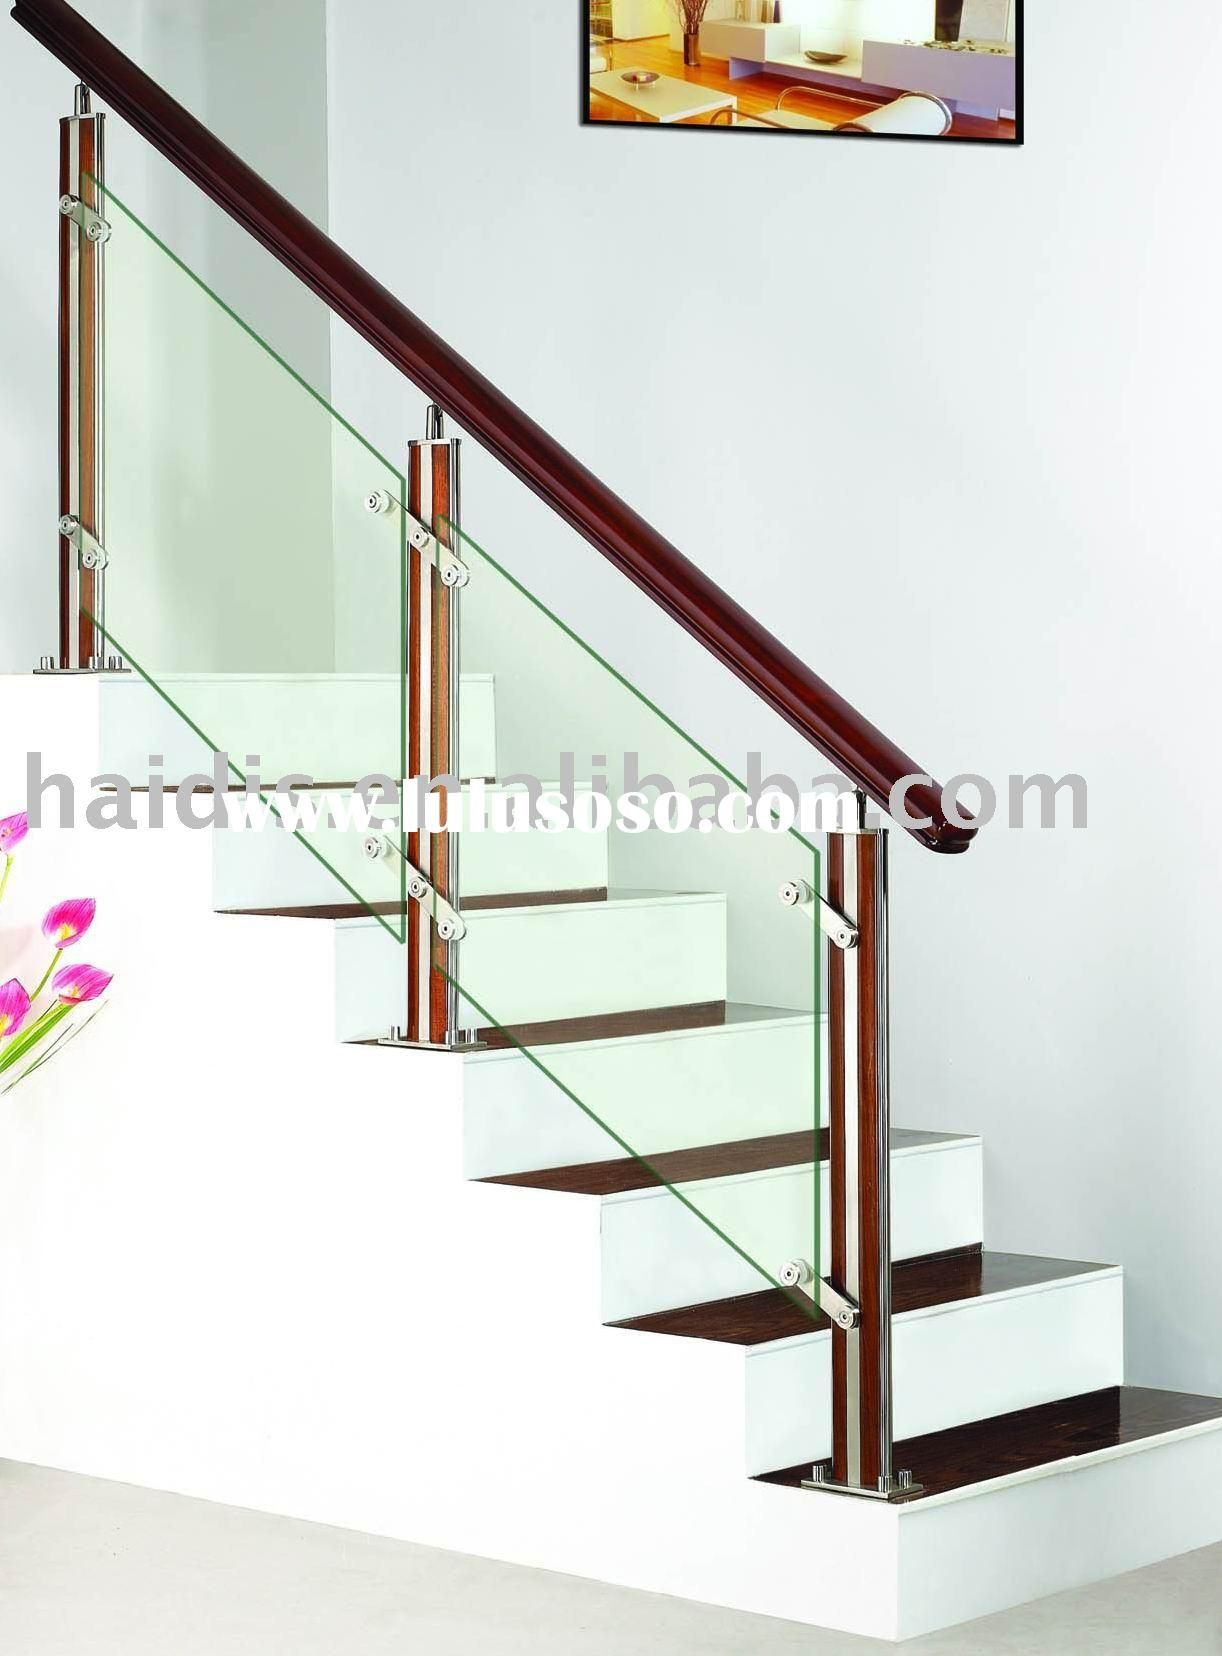 Captivating Image Result For Residential Glass Stair Railing